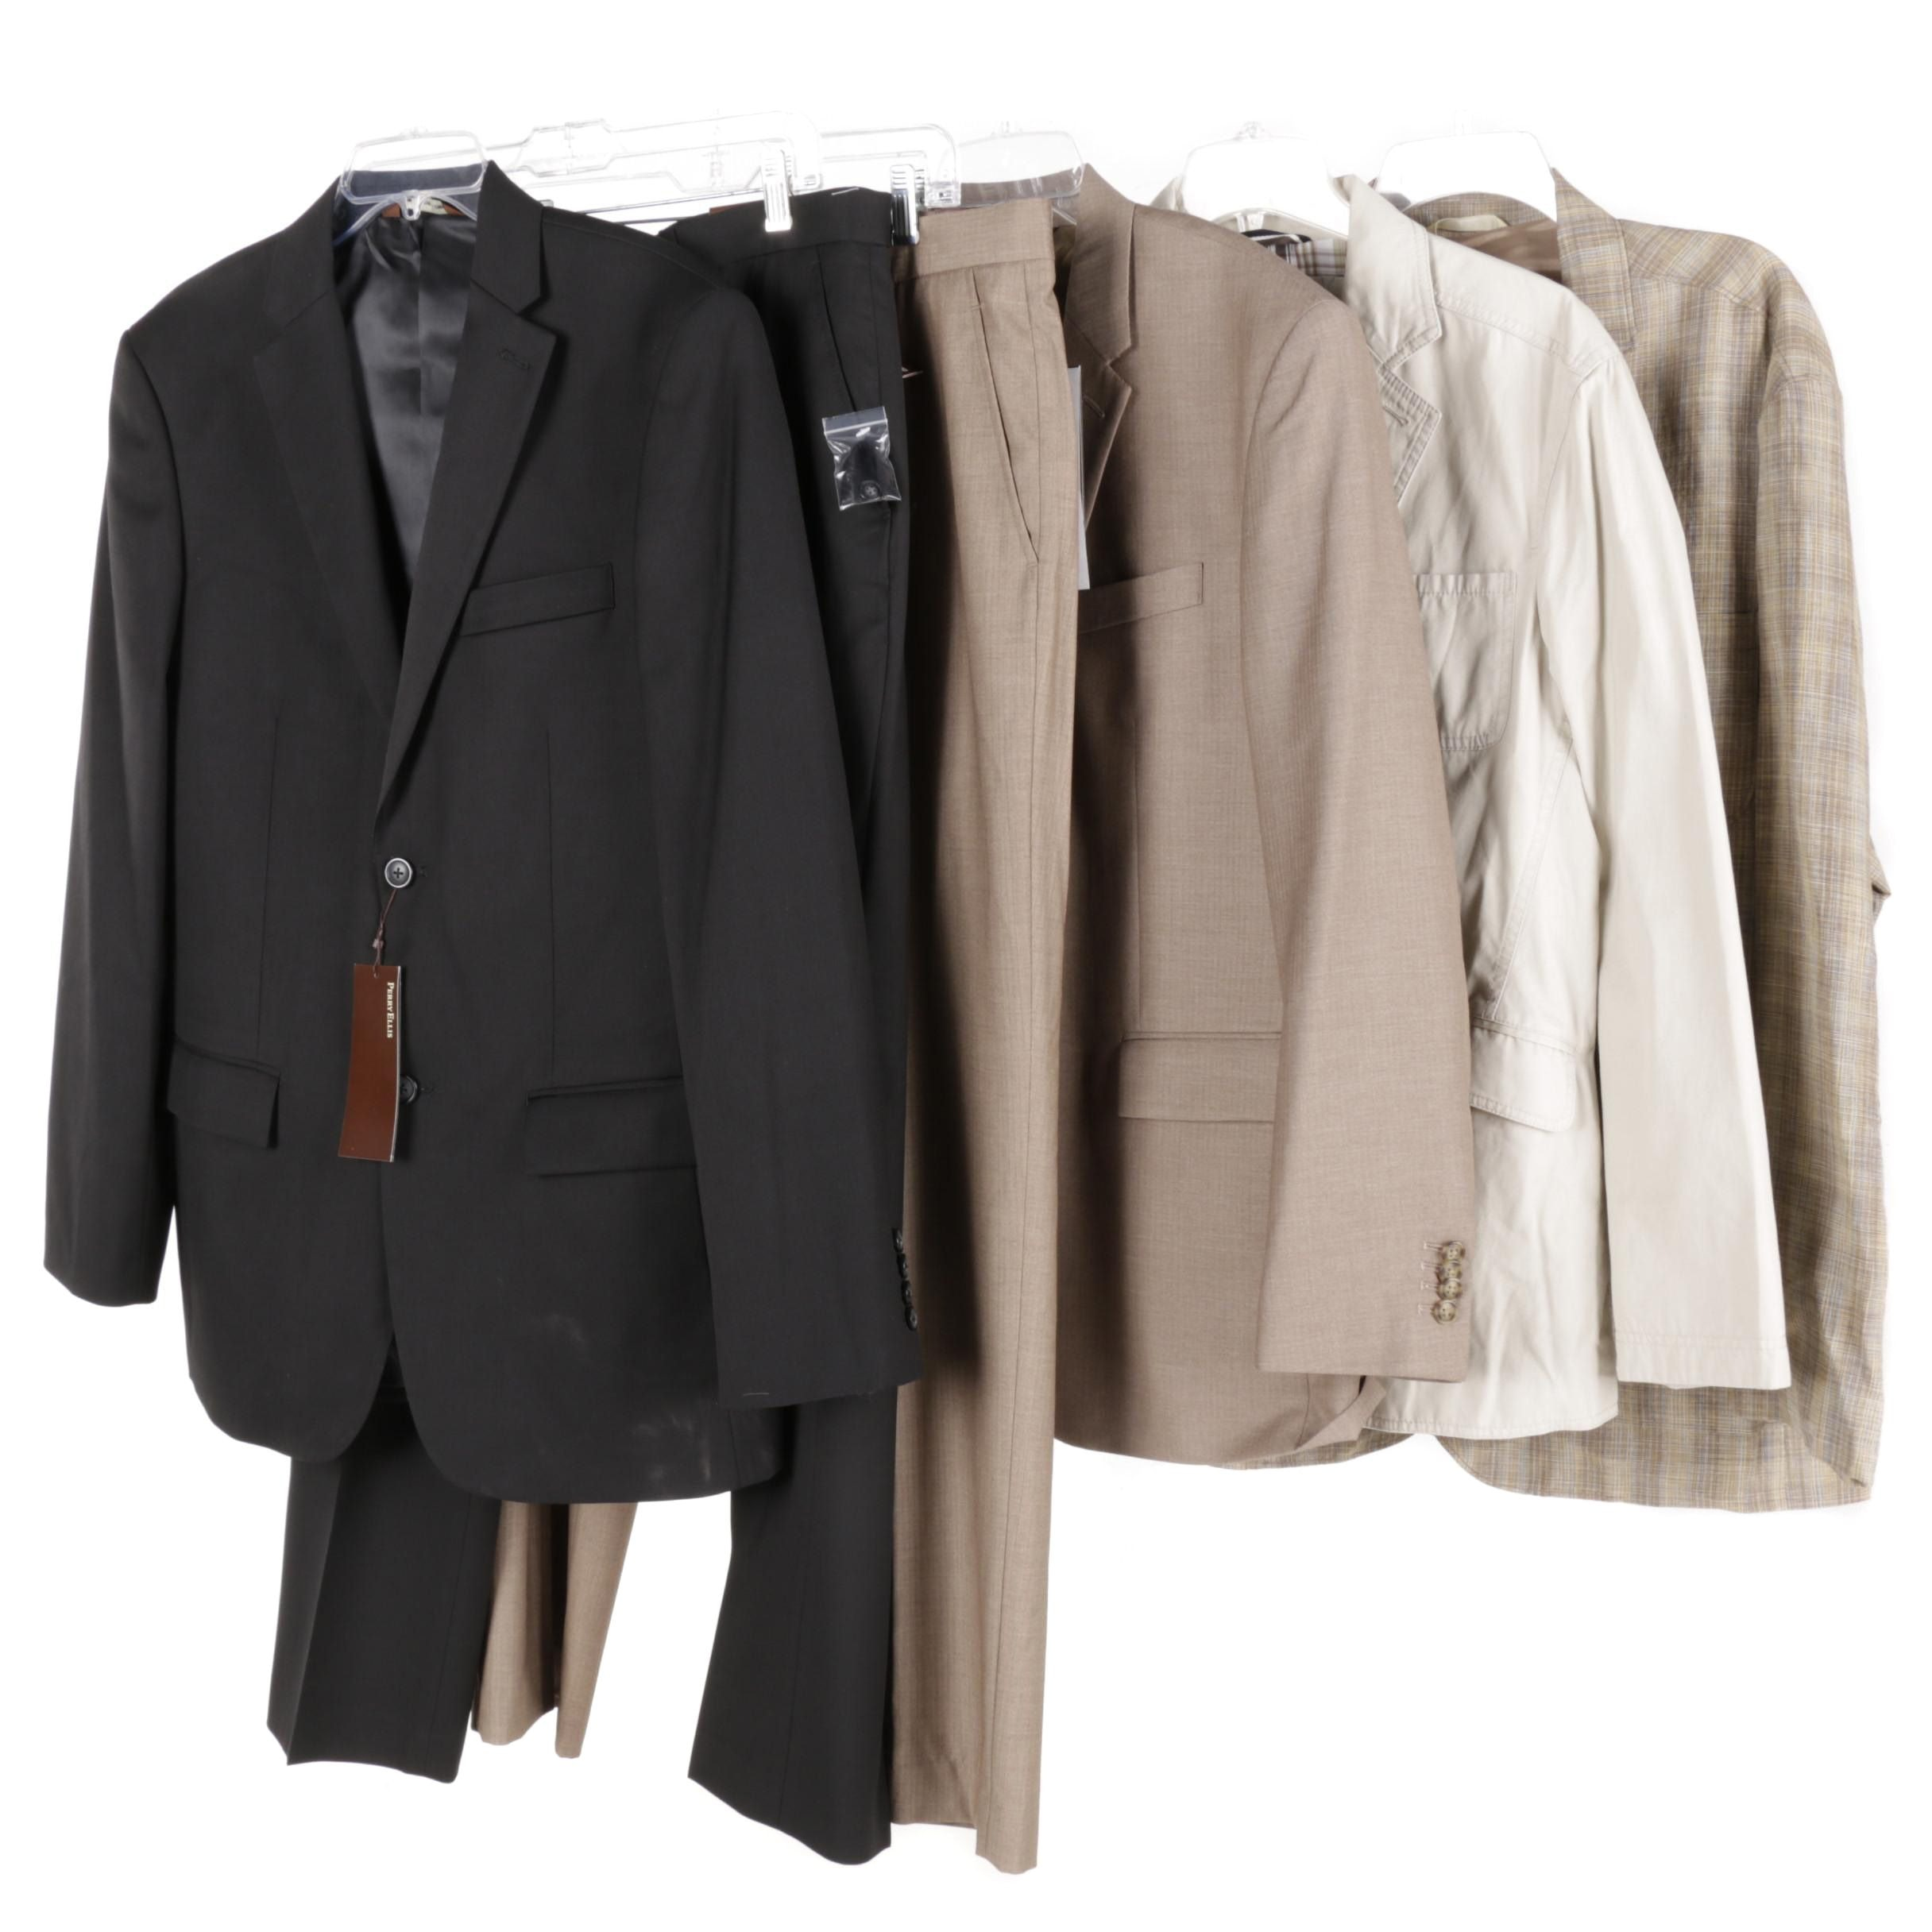 Men's Suits and Suit Jackets Including Perry Ellis